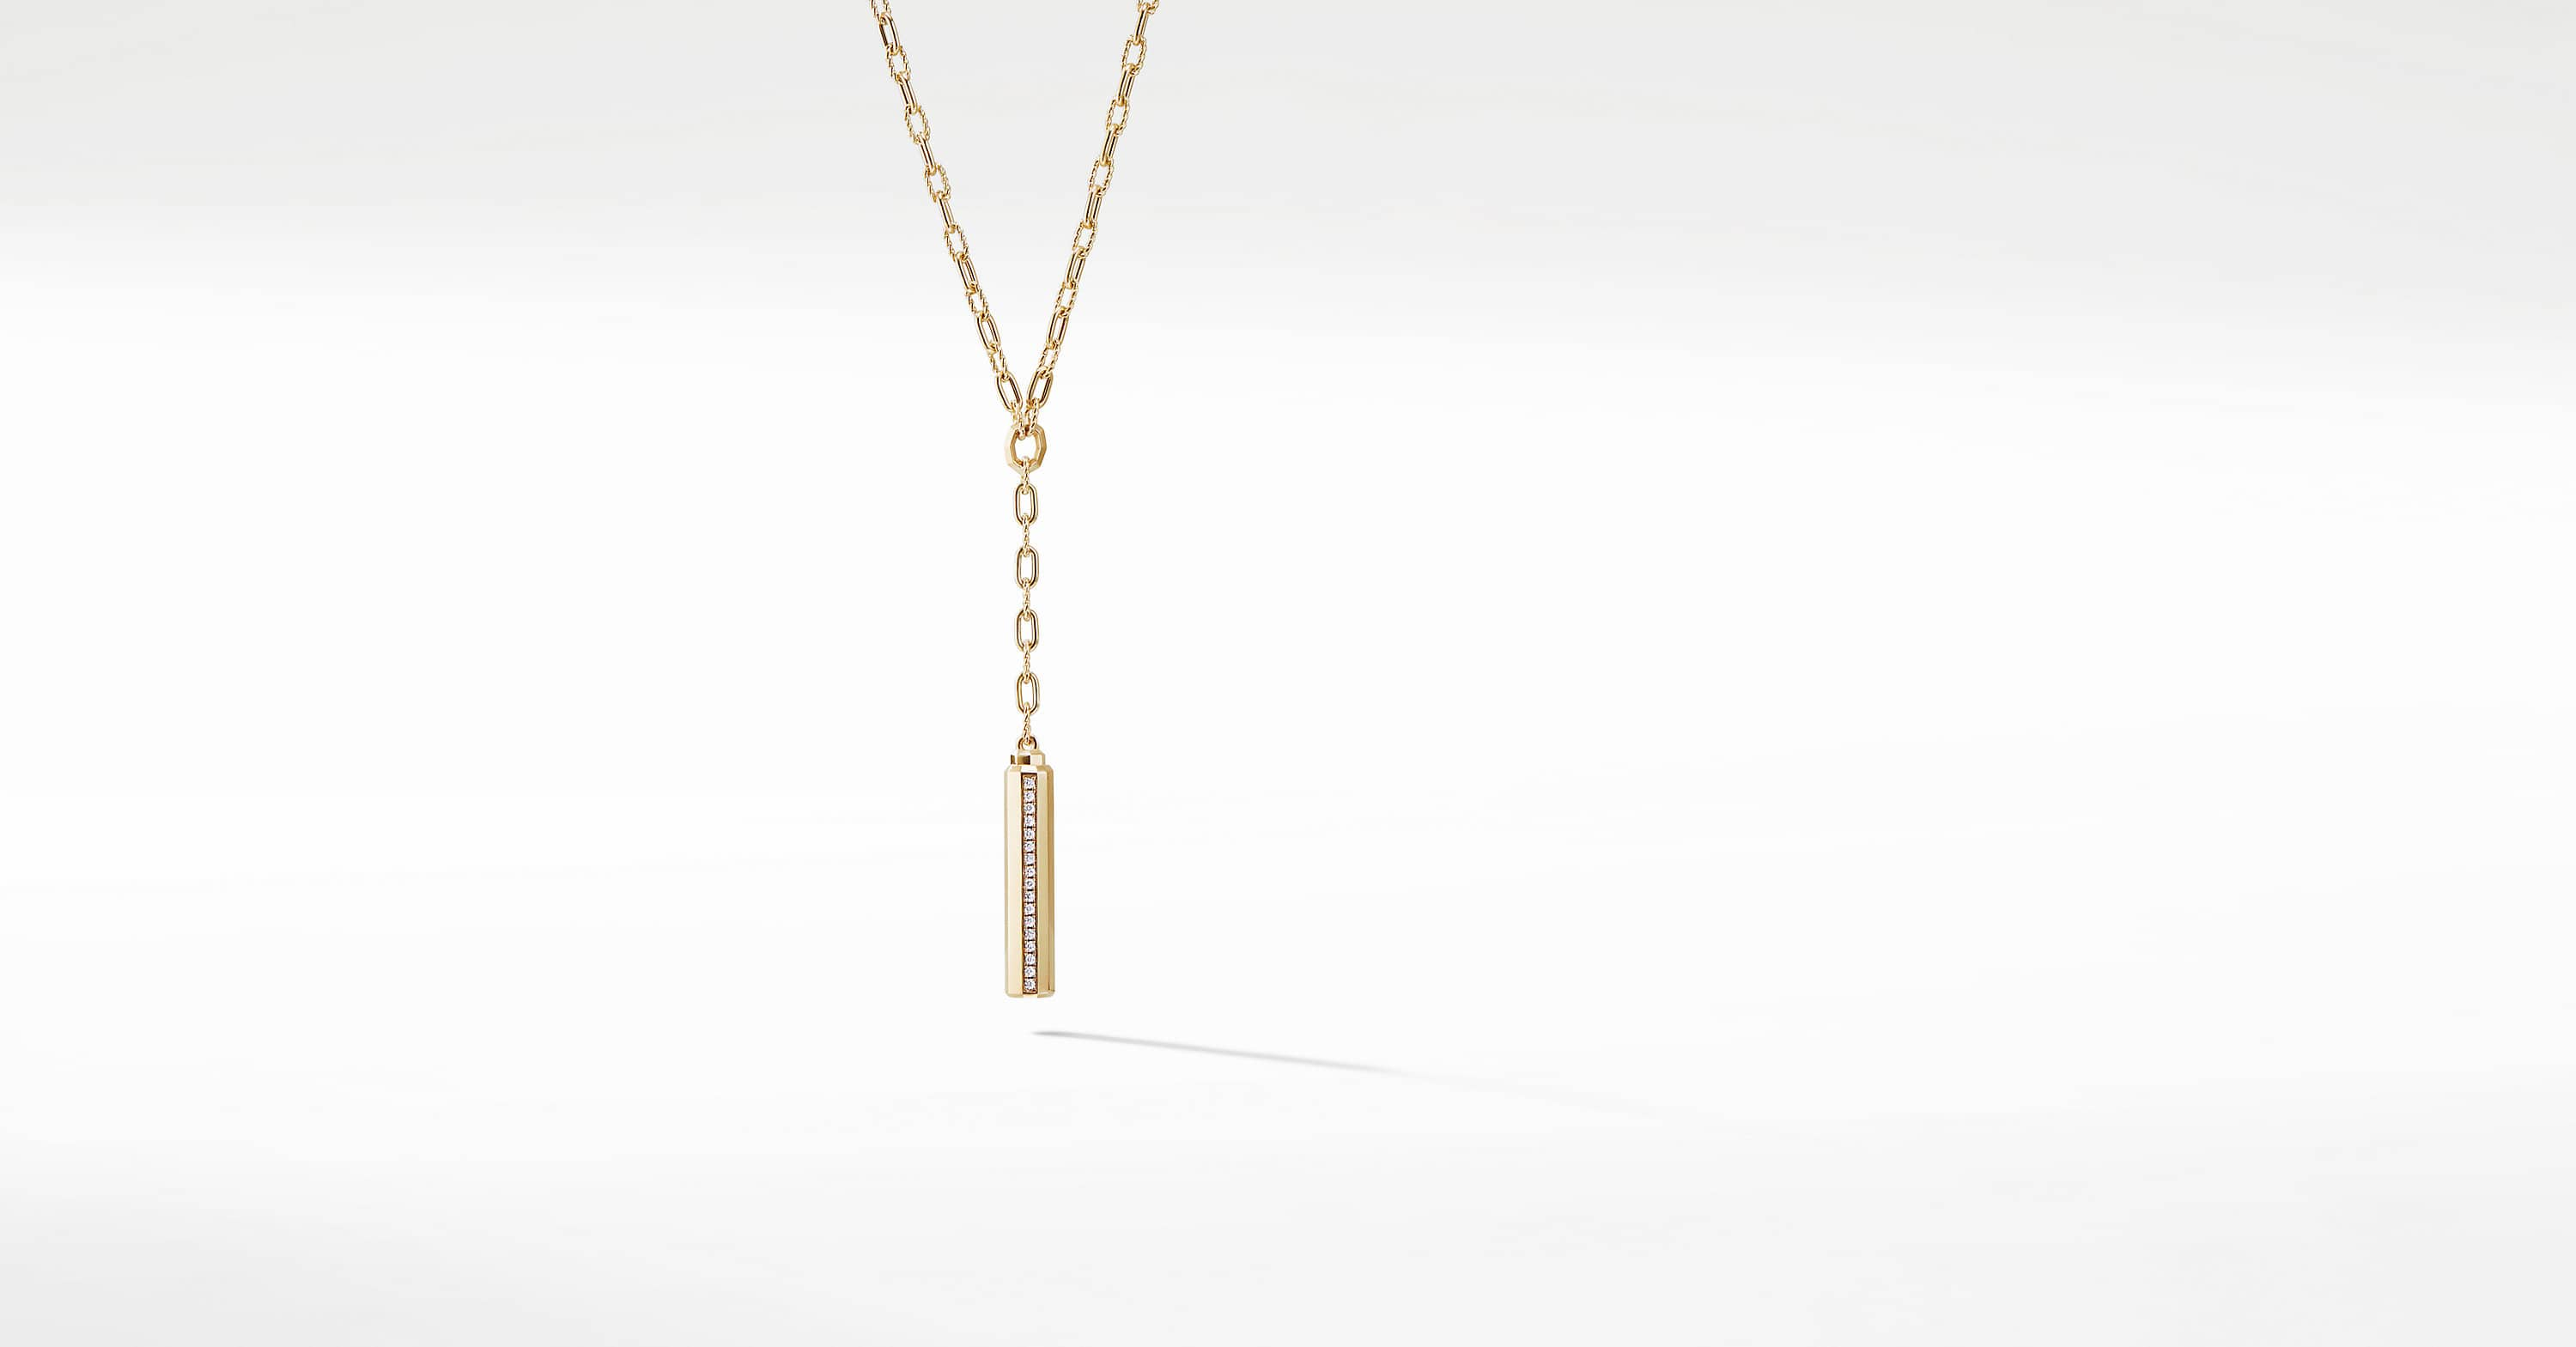 Collier en Y Barrels en or 18K avec diamants